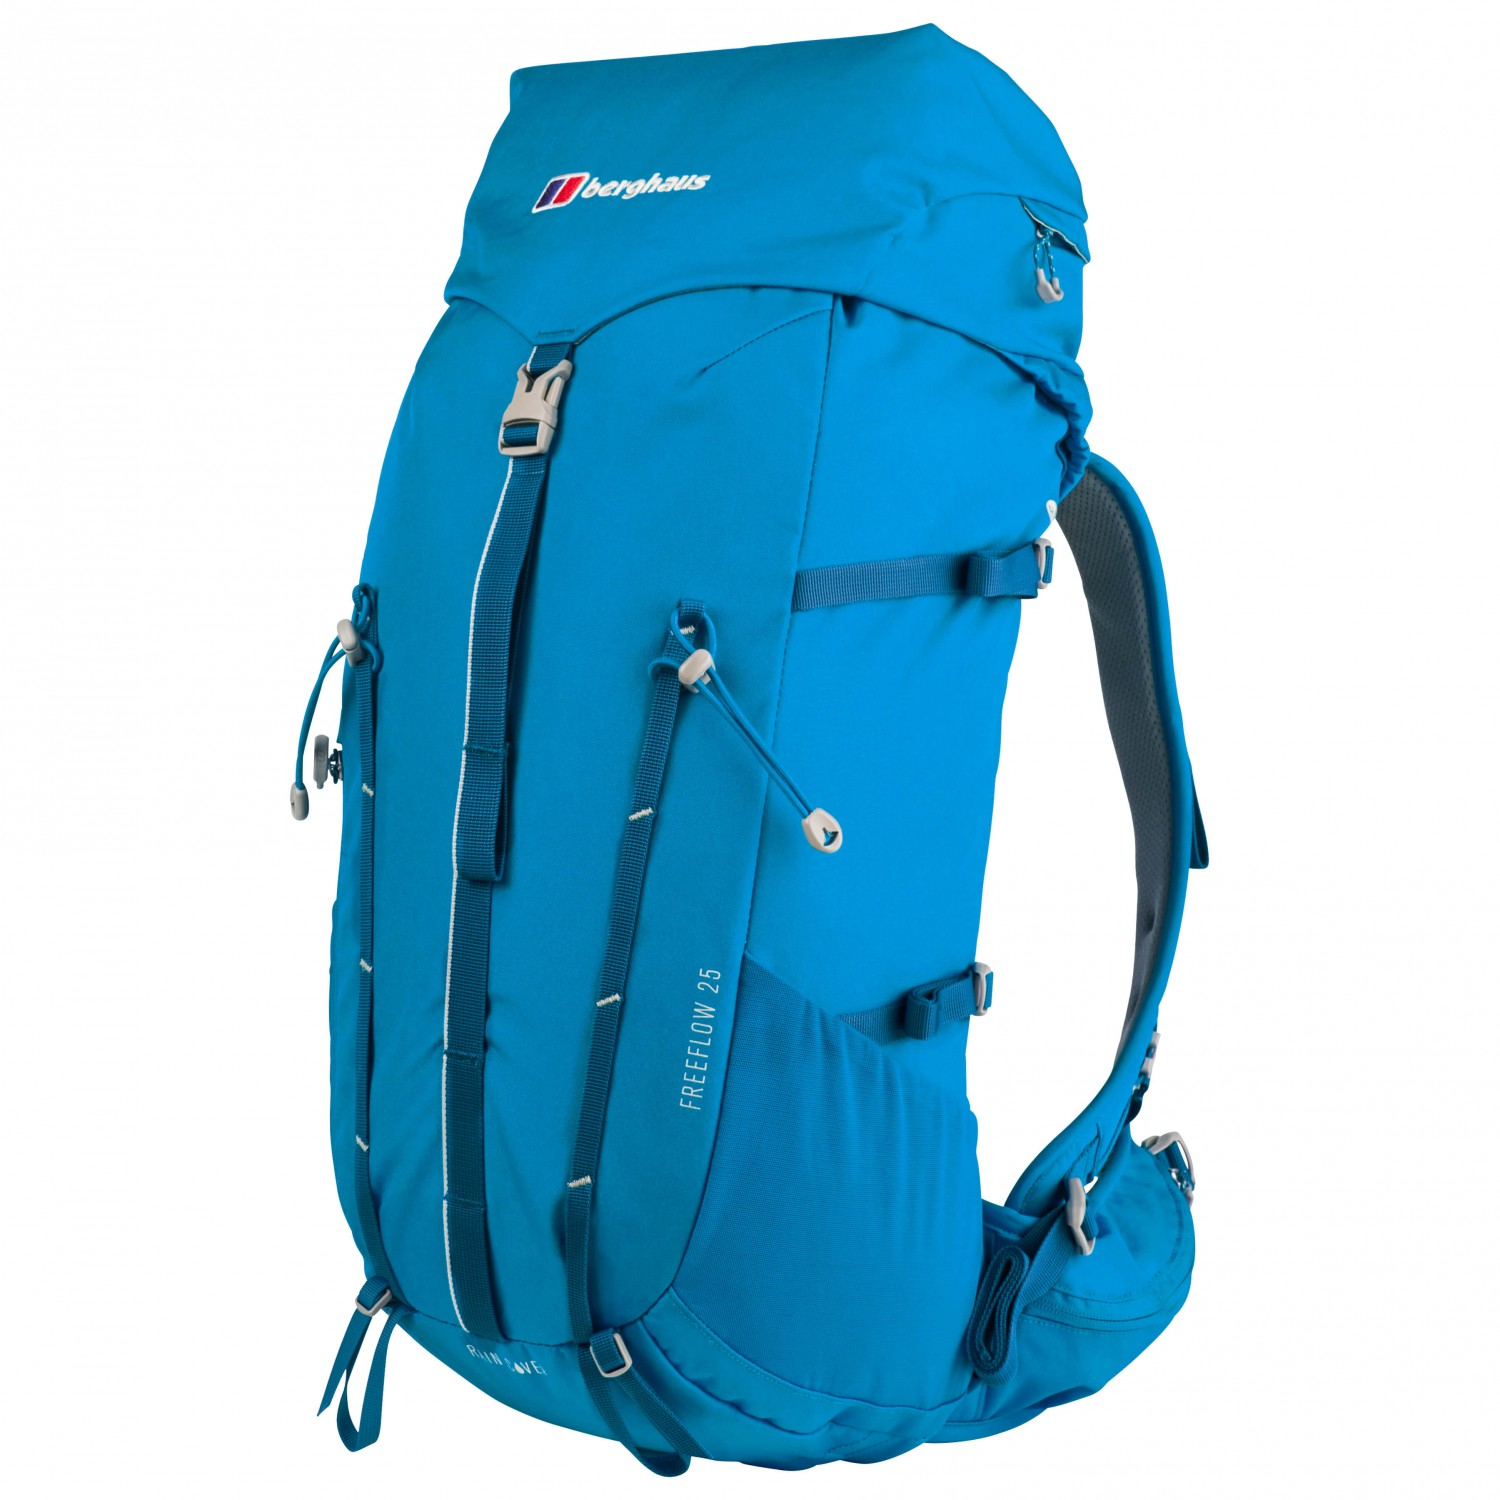 Berghaus Freeflow 25 - Trekking Backpack   Buy online   Alpinetrek.co.uk 619f8cf381